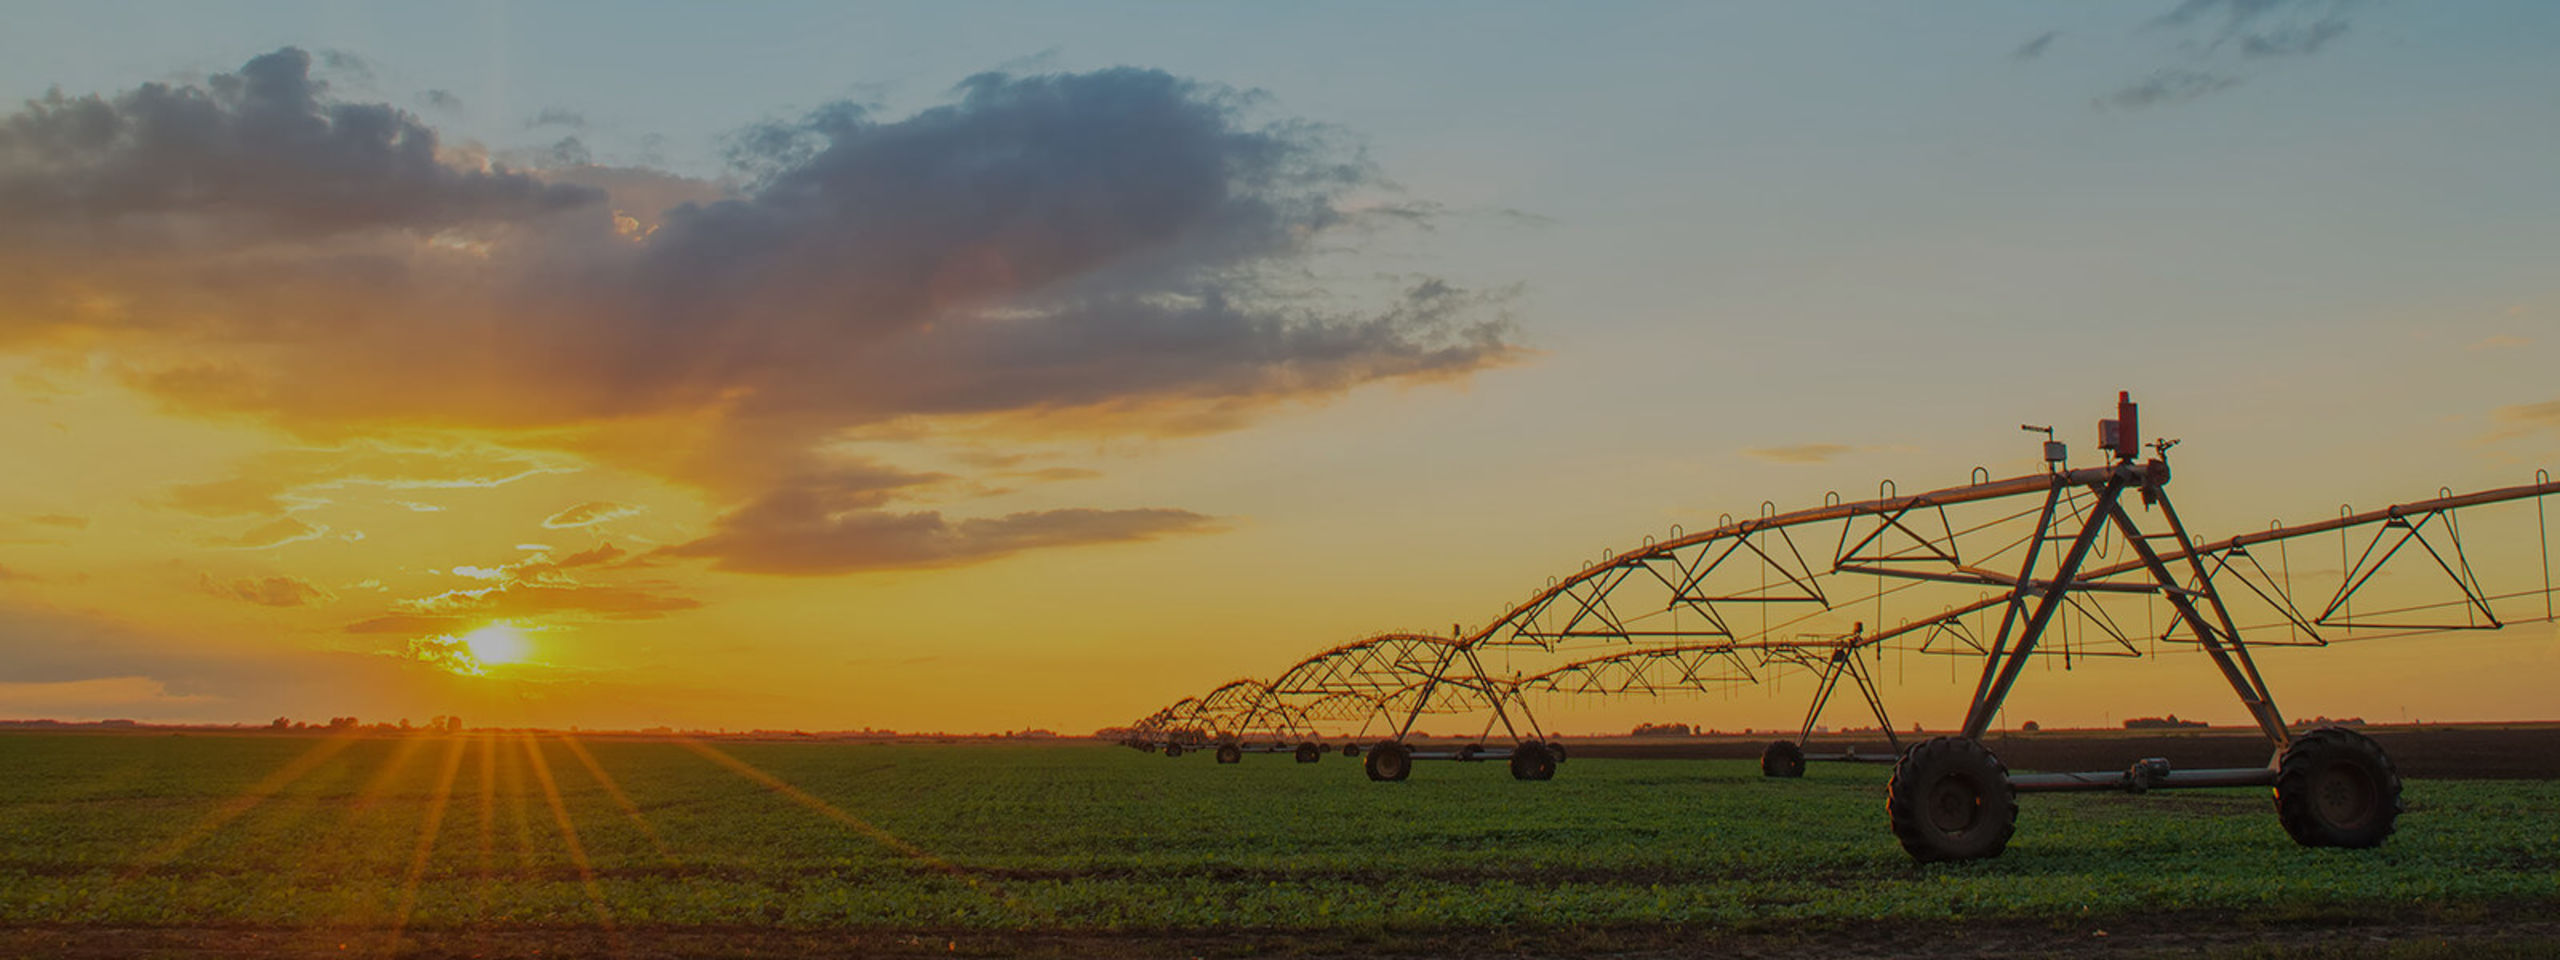 Irrigated Farms